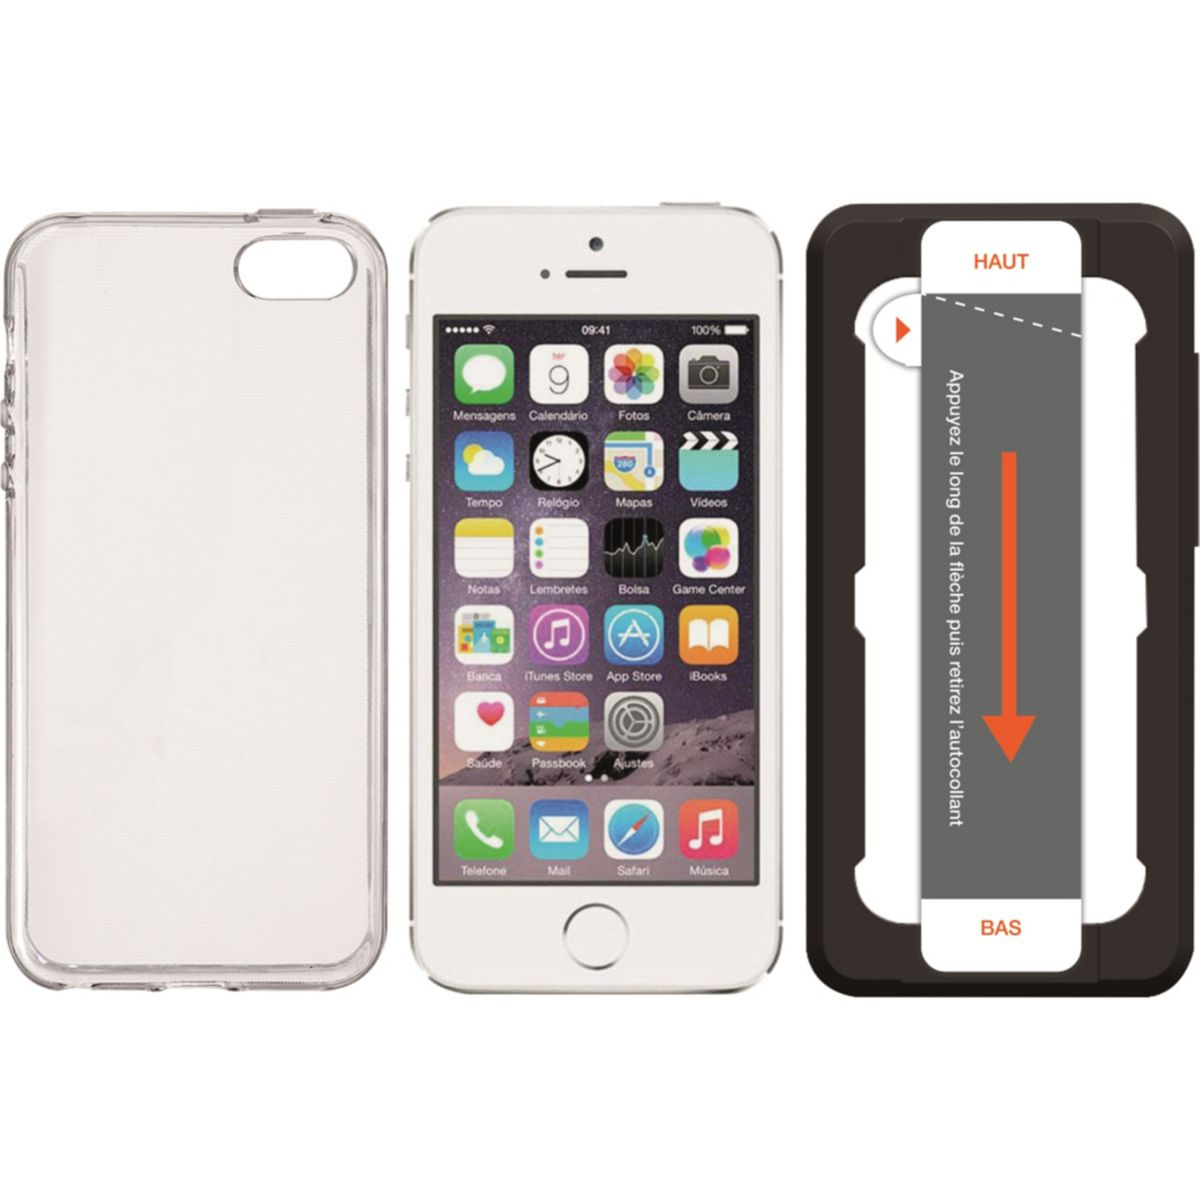 Coque + Protège écran ESSENTIELB iPhone 5S/SE Coque +Verre+Applicateur (photo)